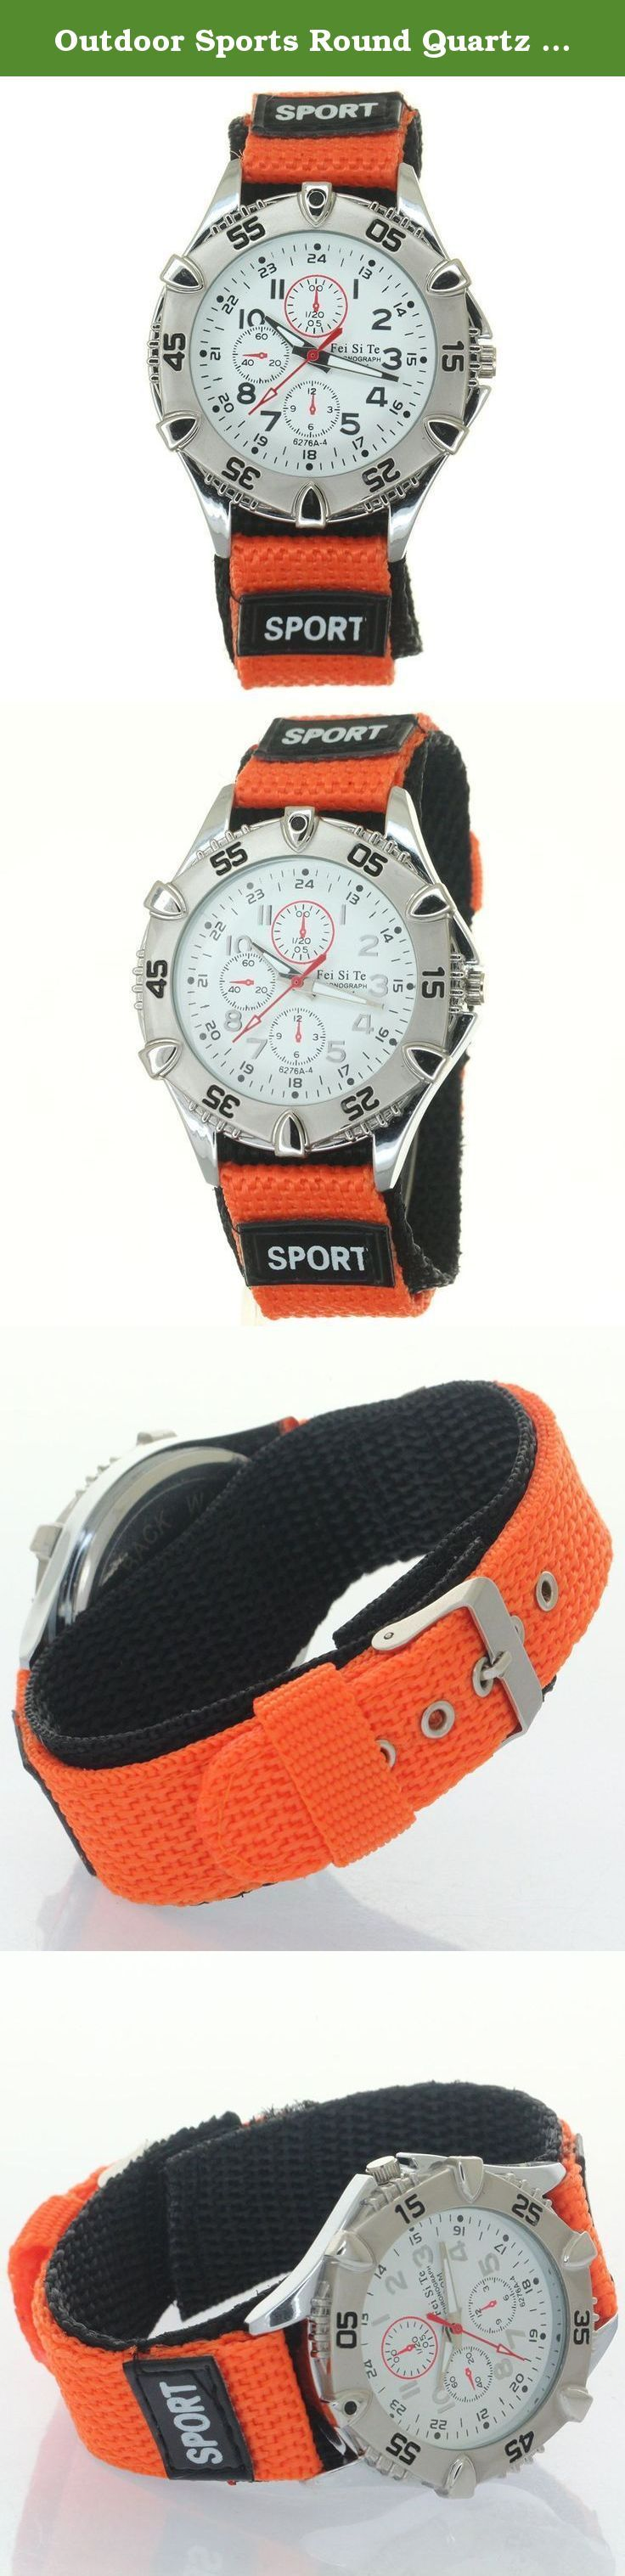 Outdoor Sports Round Quartz Watch Orange Woven Nylon Strap Stripe Fiber Velcro Decorate Chronograph. Outdoor Sports Round Quartz Watch Orange Woven Nylon Strap Stripe Fiber Velcro Decorate Chronograph Outdoor Sports Round Quartz Watch Orange Woven Nylon Strap Belt Stripe Fiber Fabric Velcro Buckle Sports Quartz Bezel Crown Men Women Wristwatch Nylon Strap Belt Stripe Fiber Fabric Velcro Buckle Woven Nylon Watch Strap Fabric Band Velcro Buckle Sports Quartz Bezel Crown Men Women Kid...